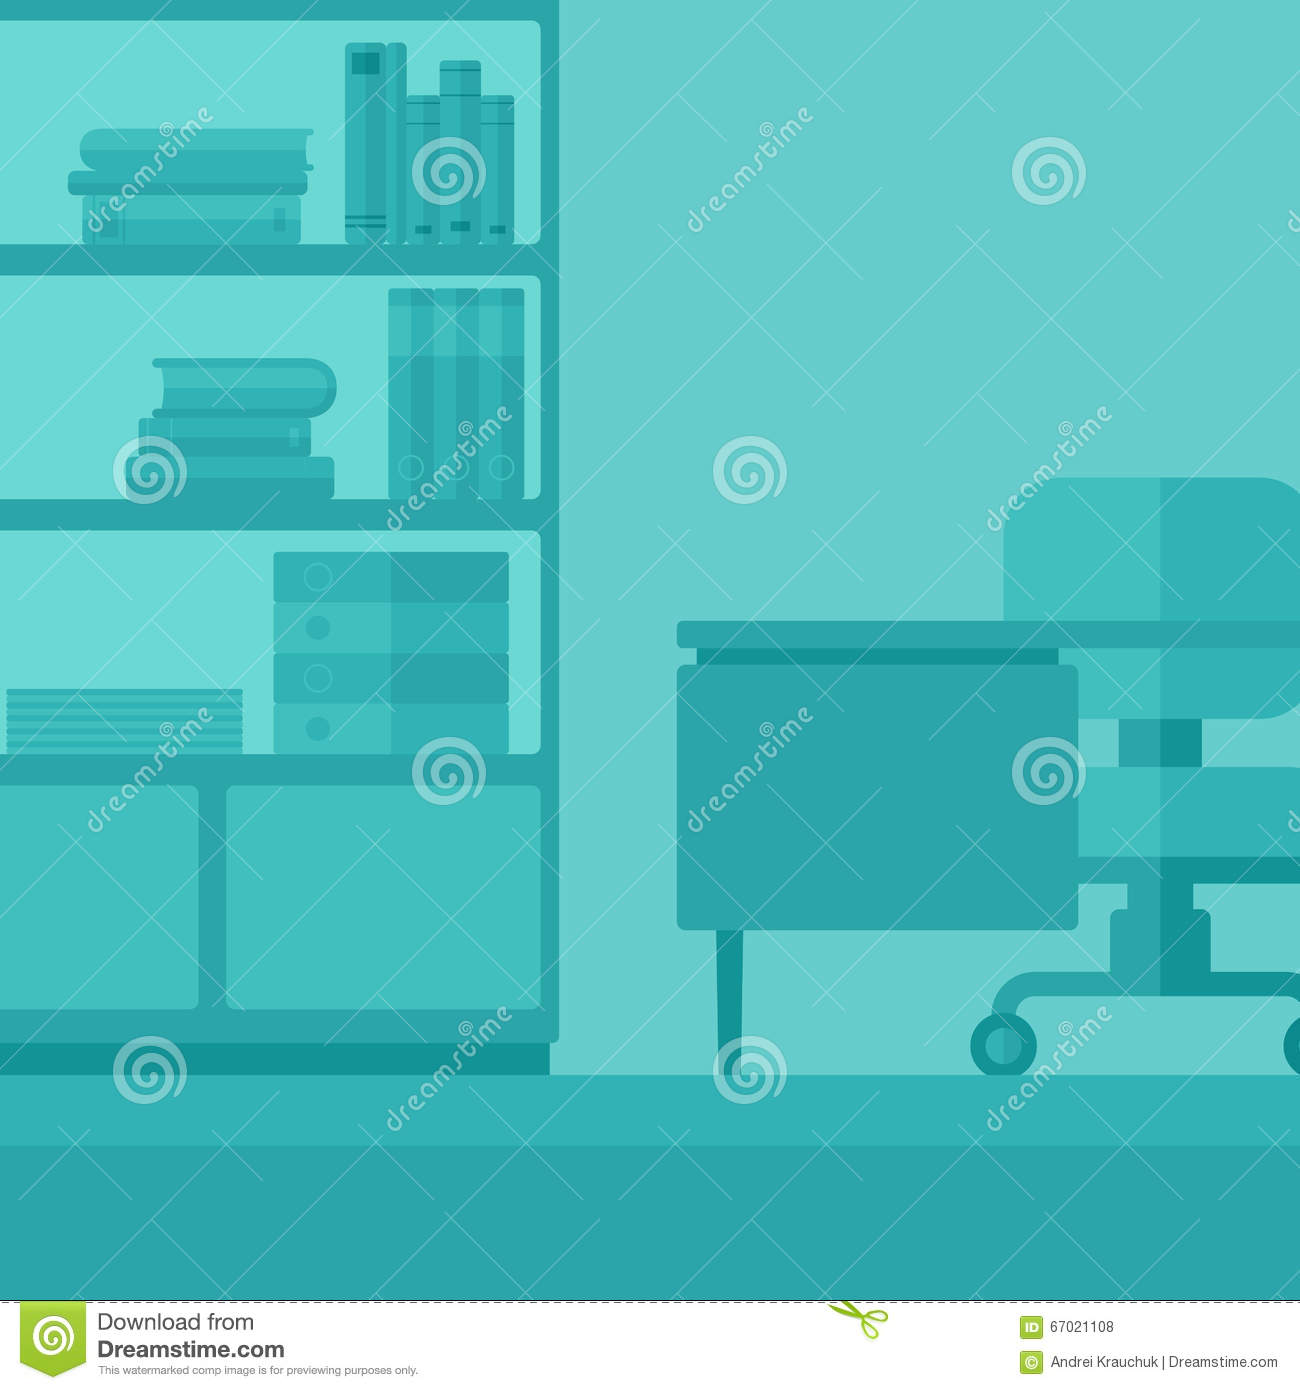 Background Of Business Office Stock Vector Illustration Of